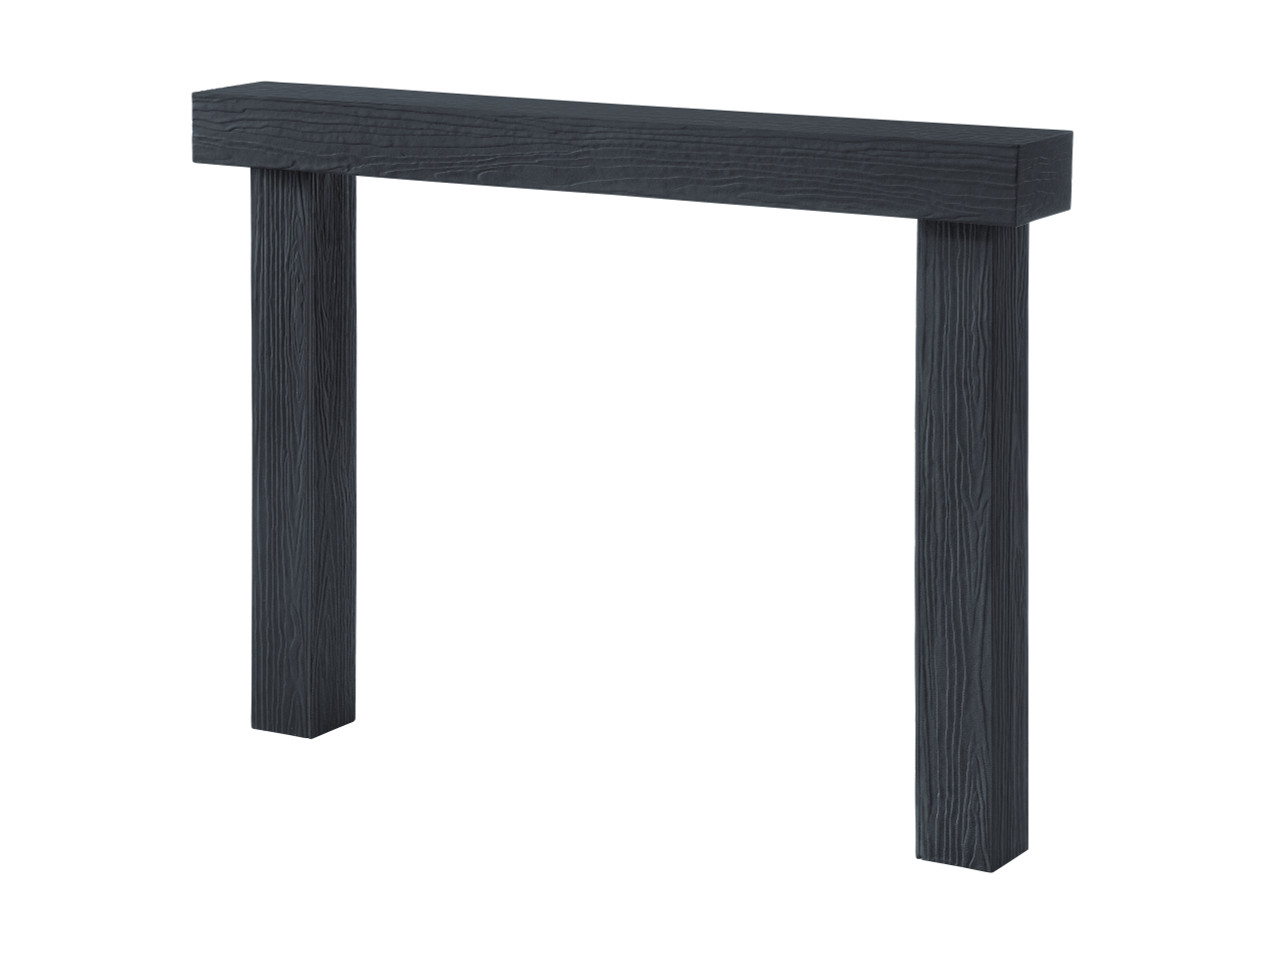 Zachary Non-Combustible Fireplace Mantel Surround Pepper (2)